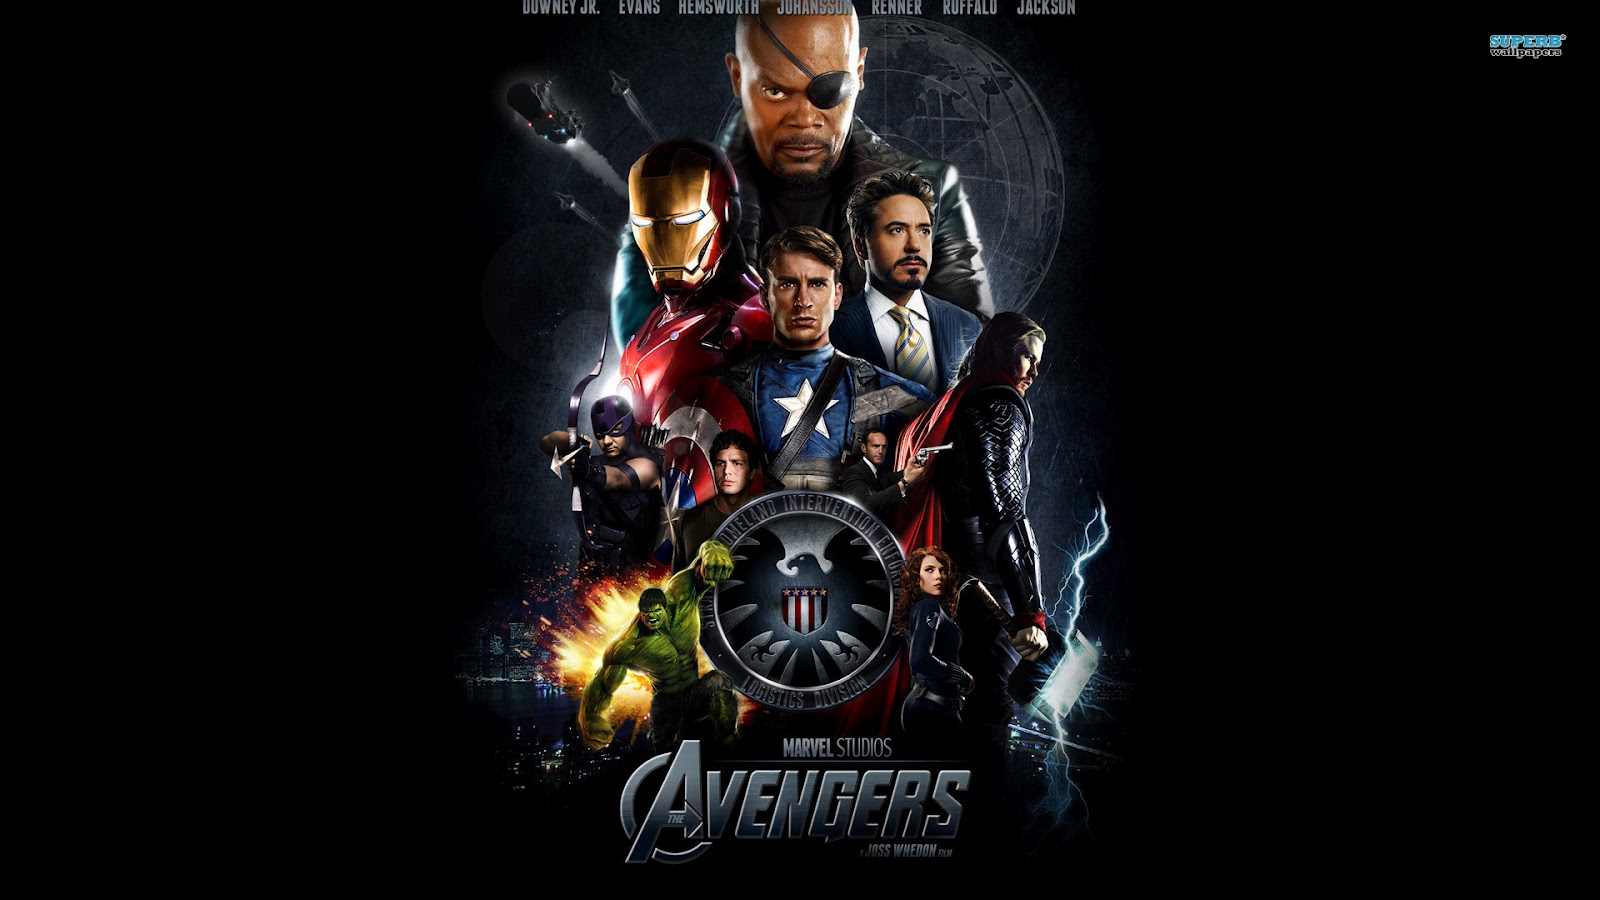 Free Hd Wallpapers: The Avengers Hd Wallpapers